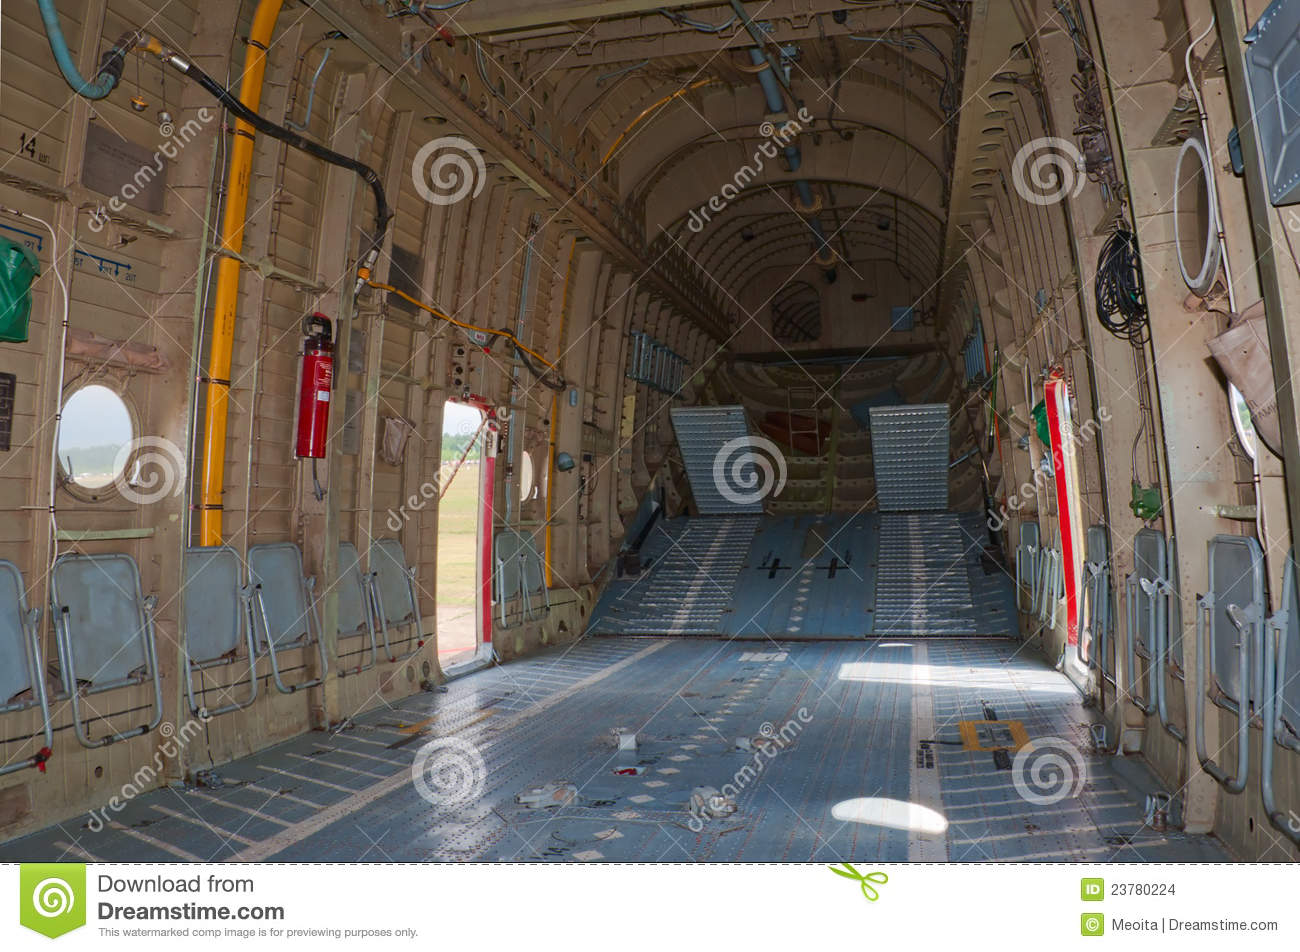 Cargo Hold Of Mi-26 Helicopter Stock Images - Image: 23780224